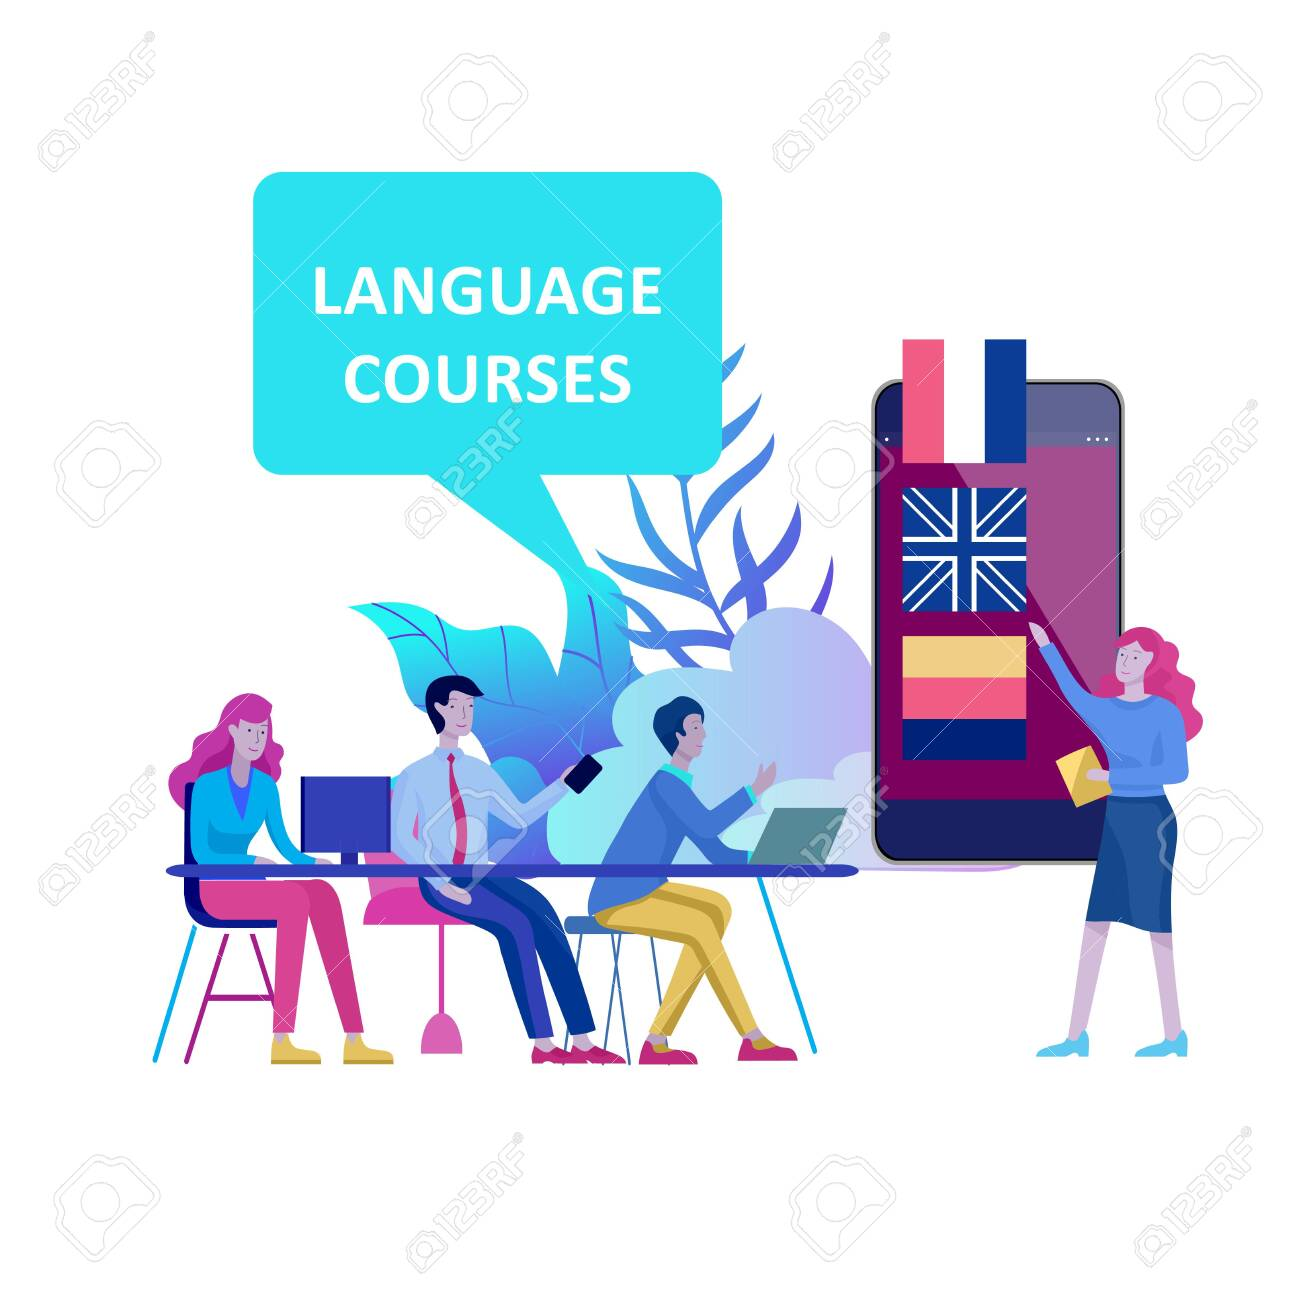 Online language courses, distance education, training. Language Learning Interface and Teaching Concept. Education Concept, training young people. Internet students - 124290767